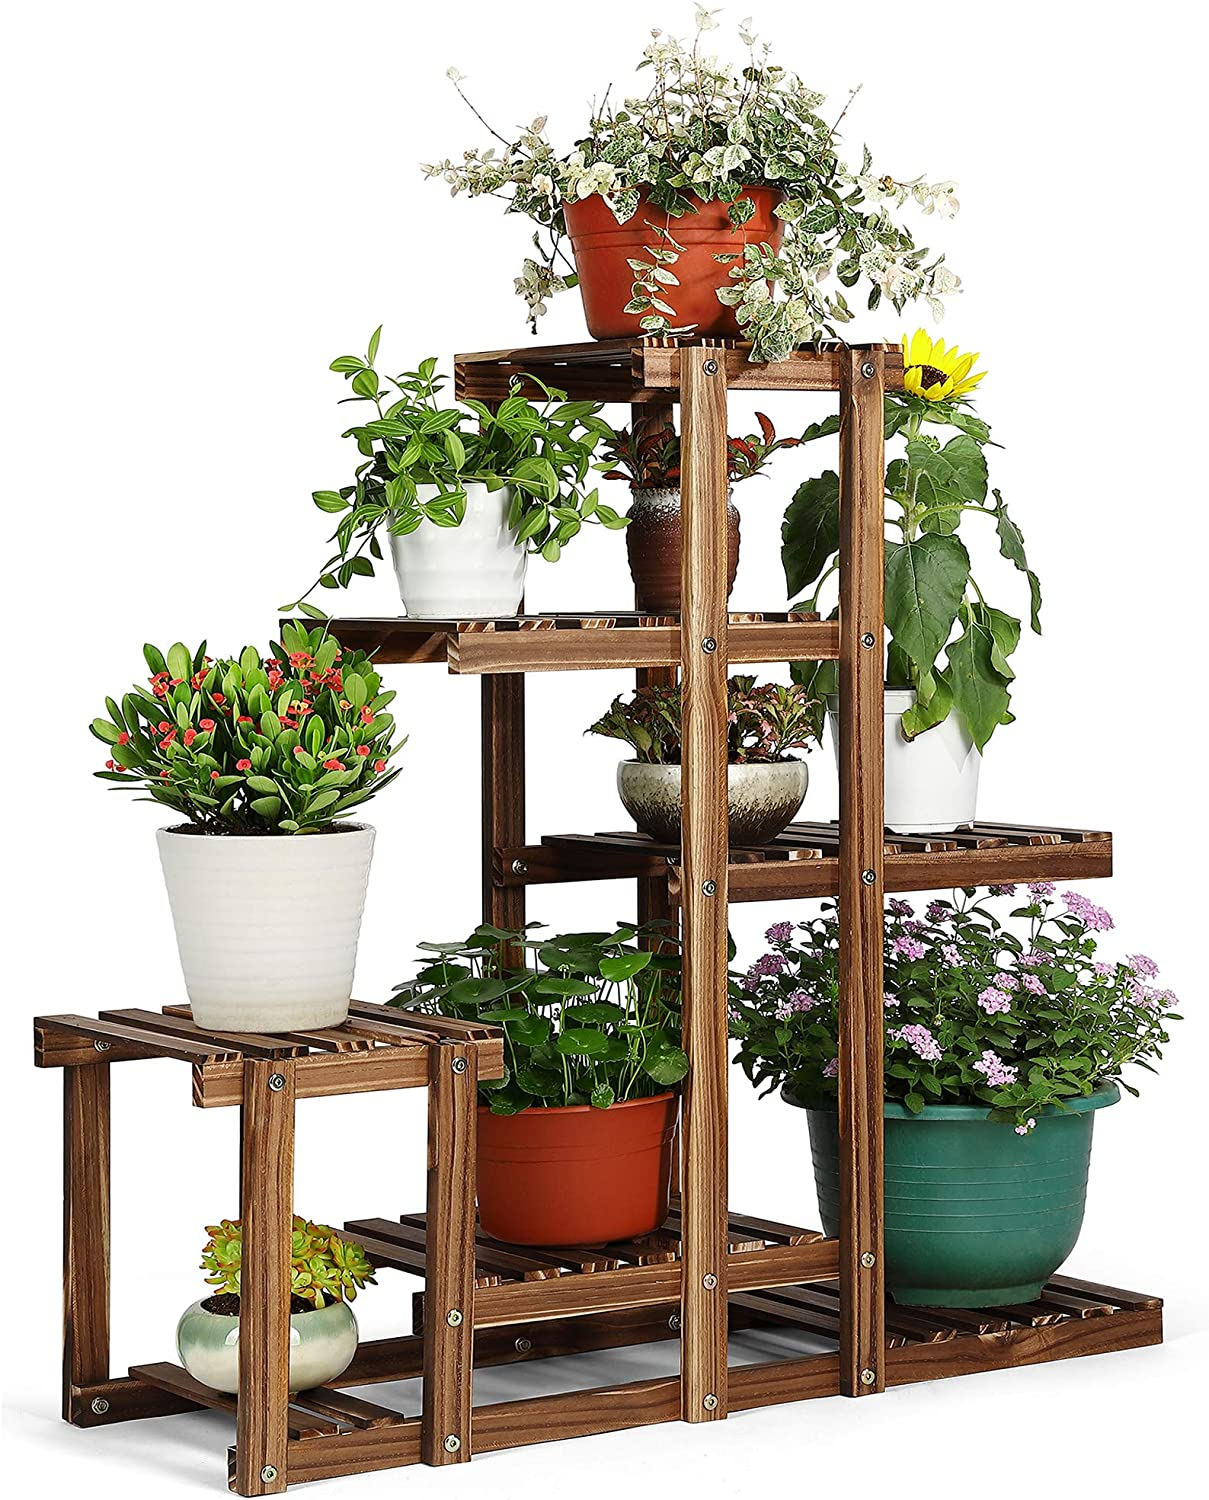 HYNAWIN Plant Stand Wood Multi Tier Plant Shelf Holder Indoor Outdoor Flower Rack Display Storage Shelves for Patio Garden Balcony Yard